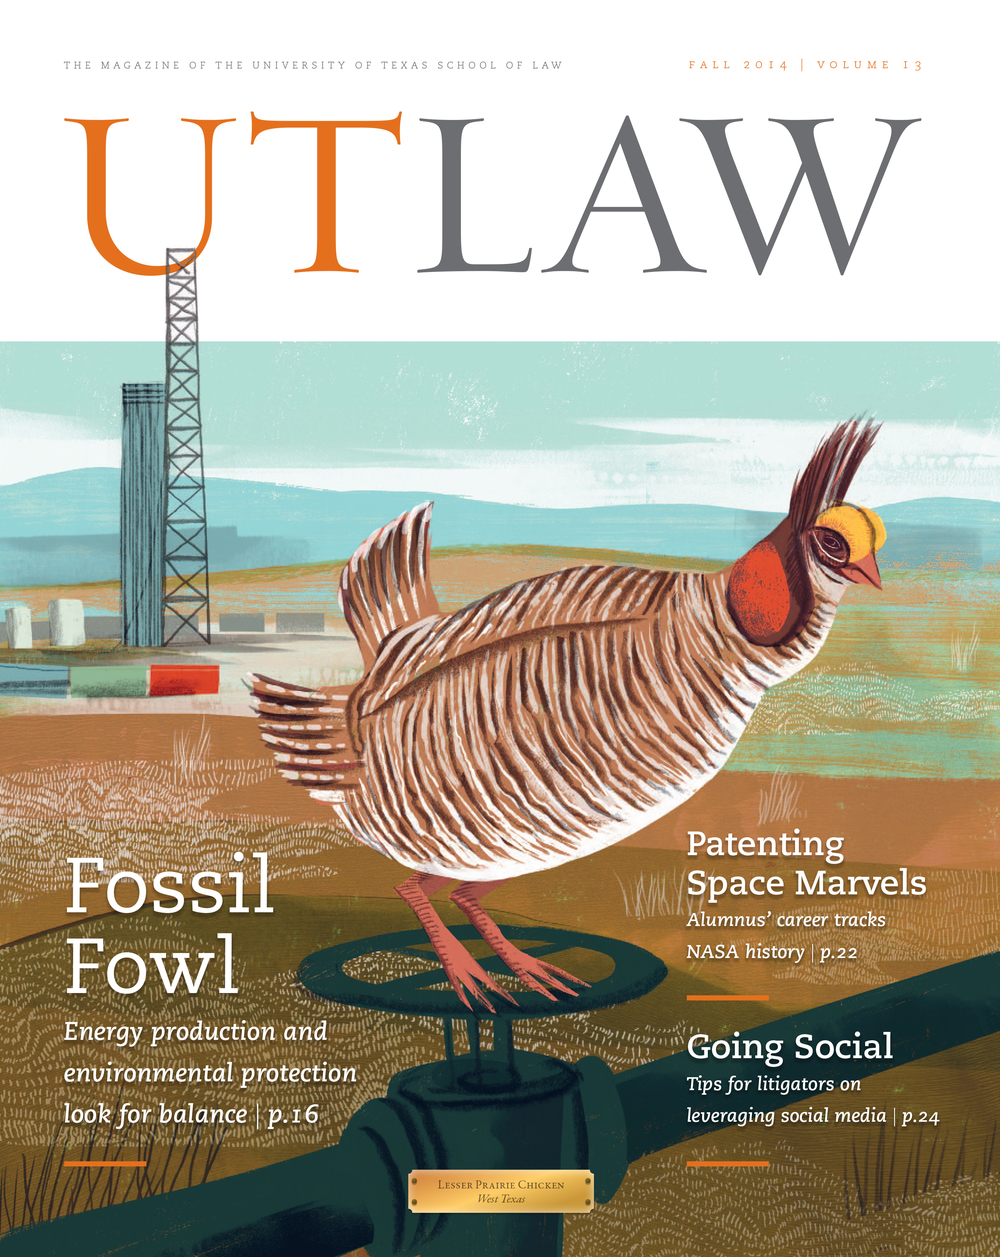 Law school alumni magazine